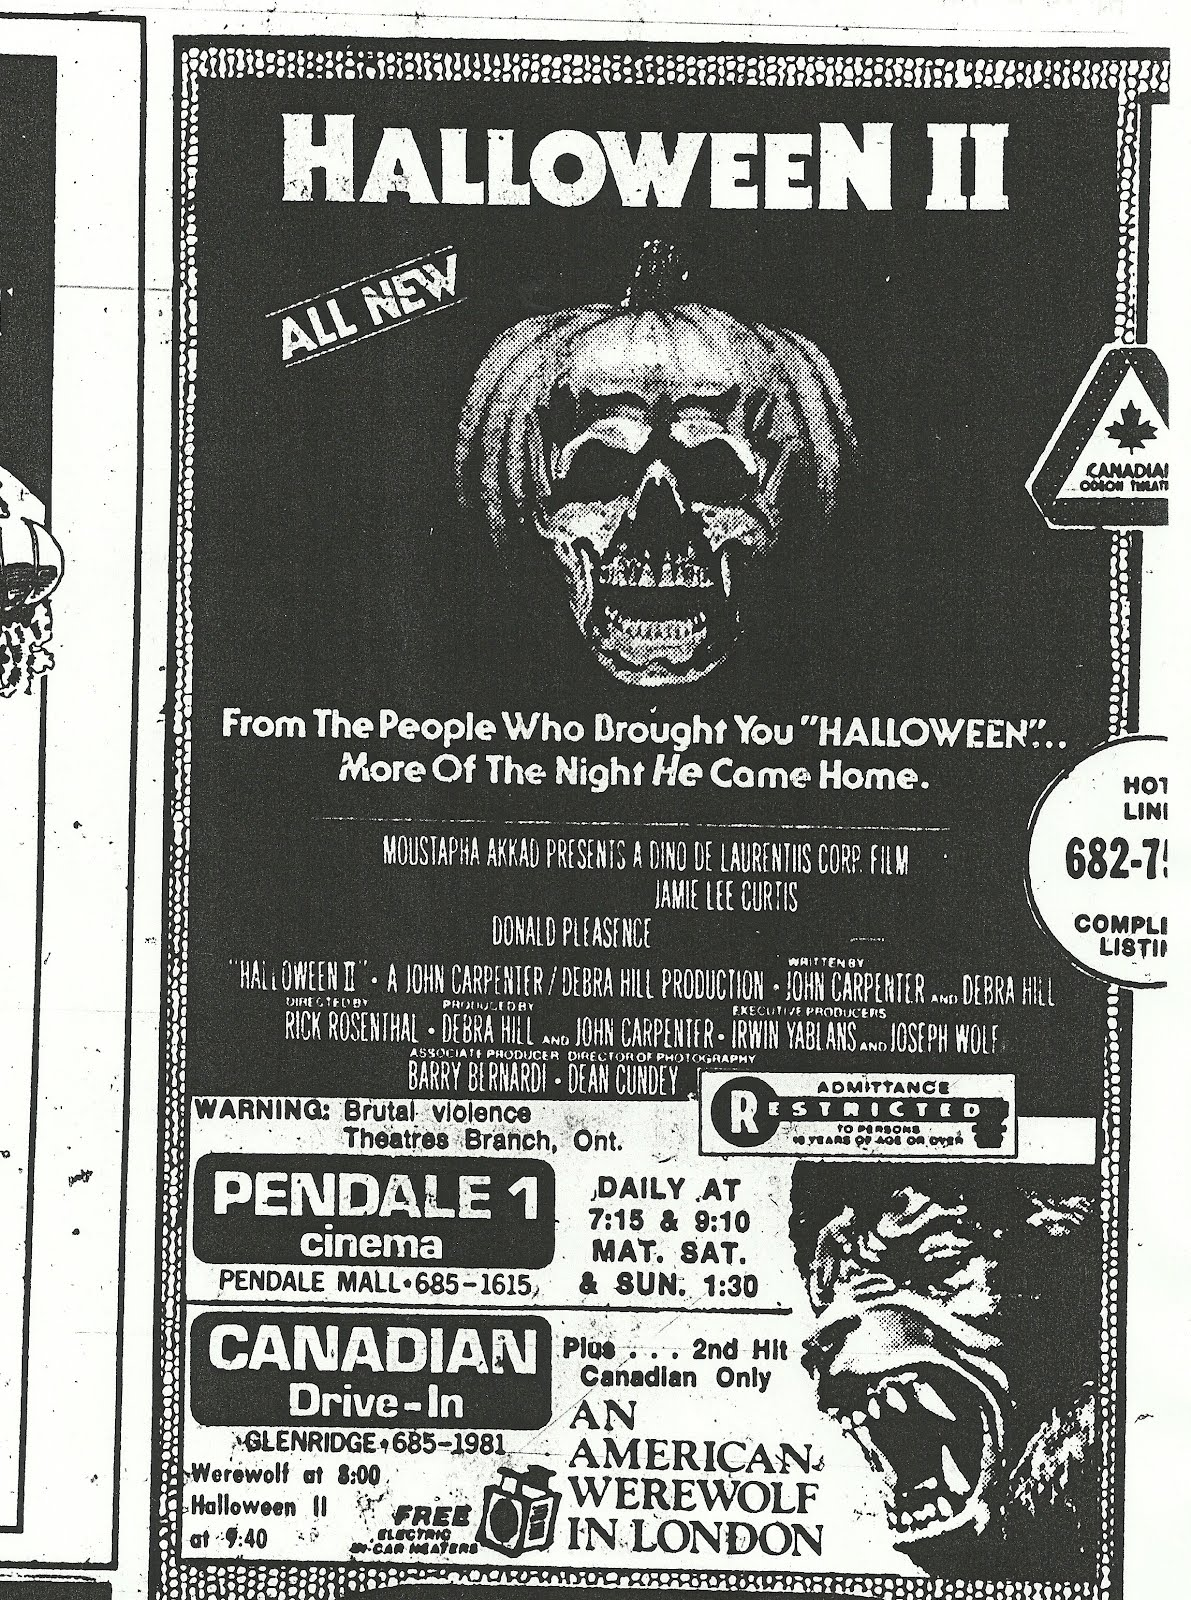 ad newspaper Halloween II 1981 Canada